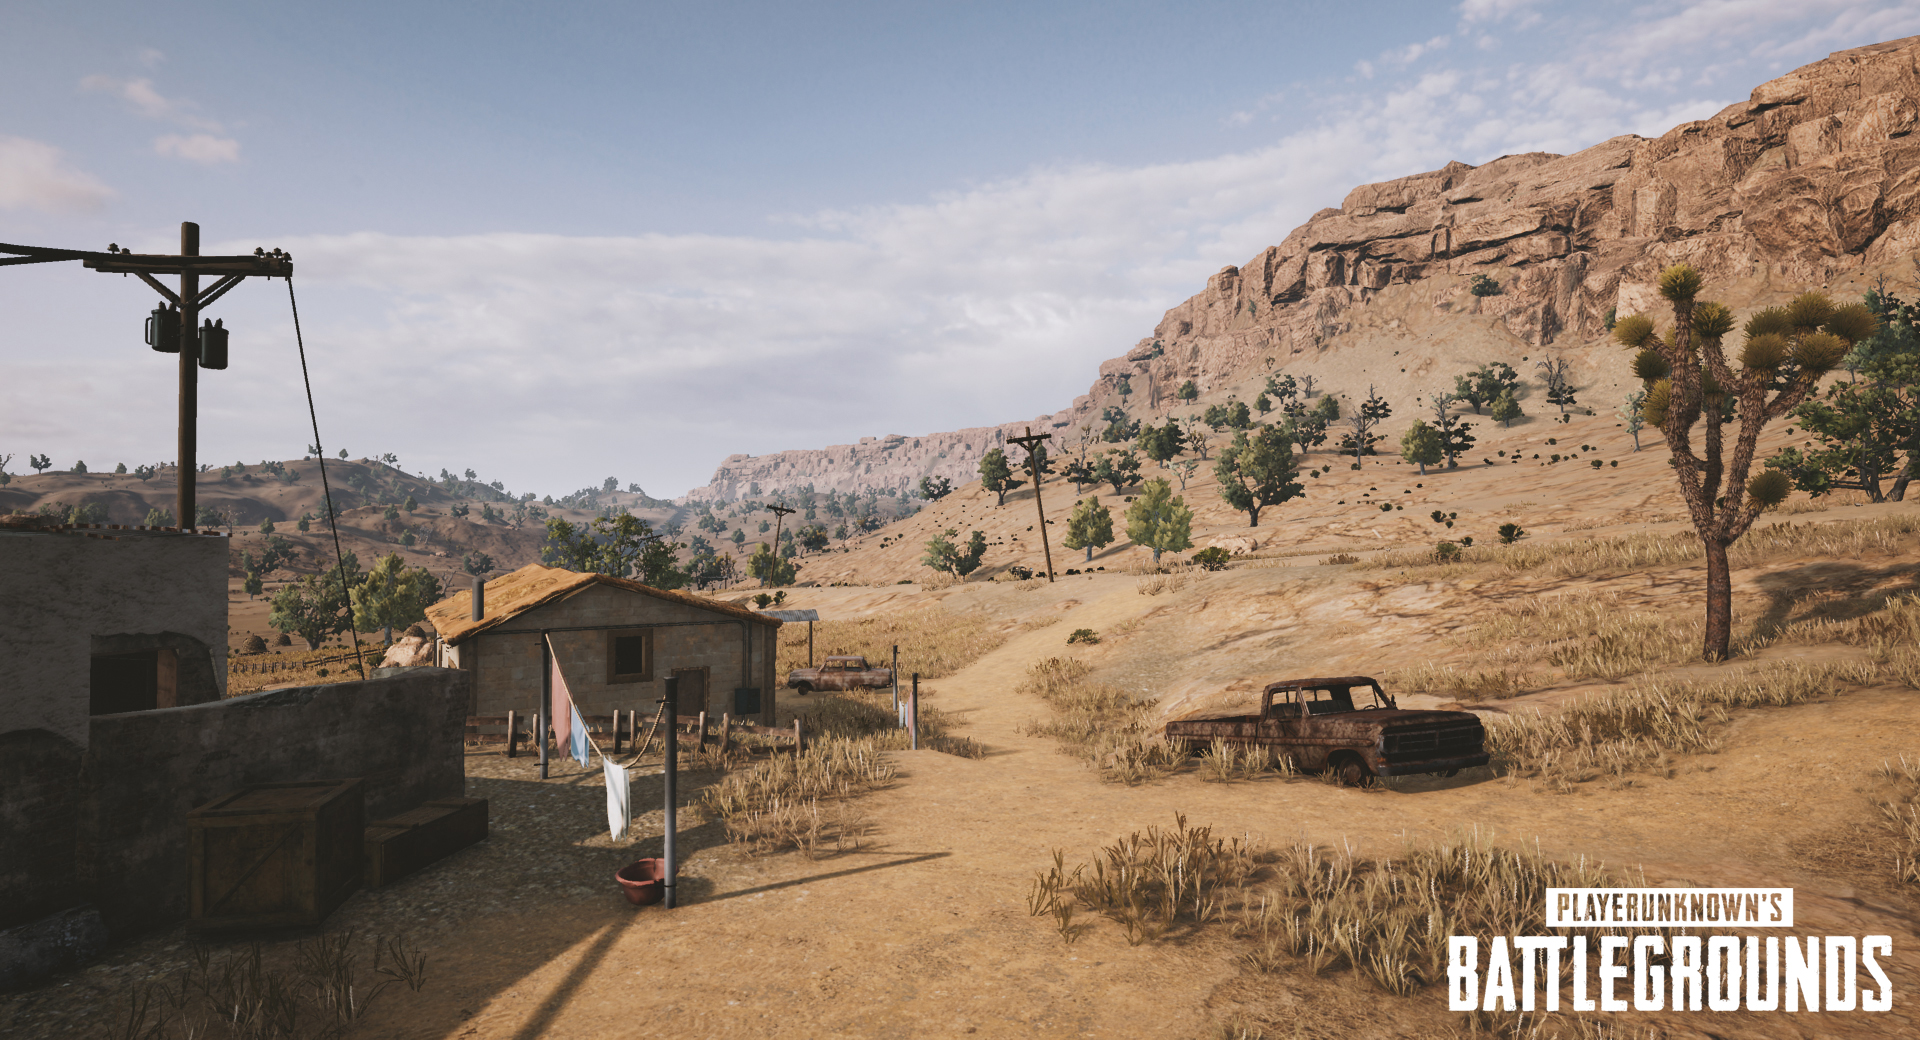 PUBGs Latest Test Build Reveals A Draft Of The New Desert